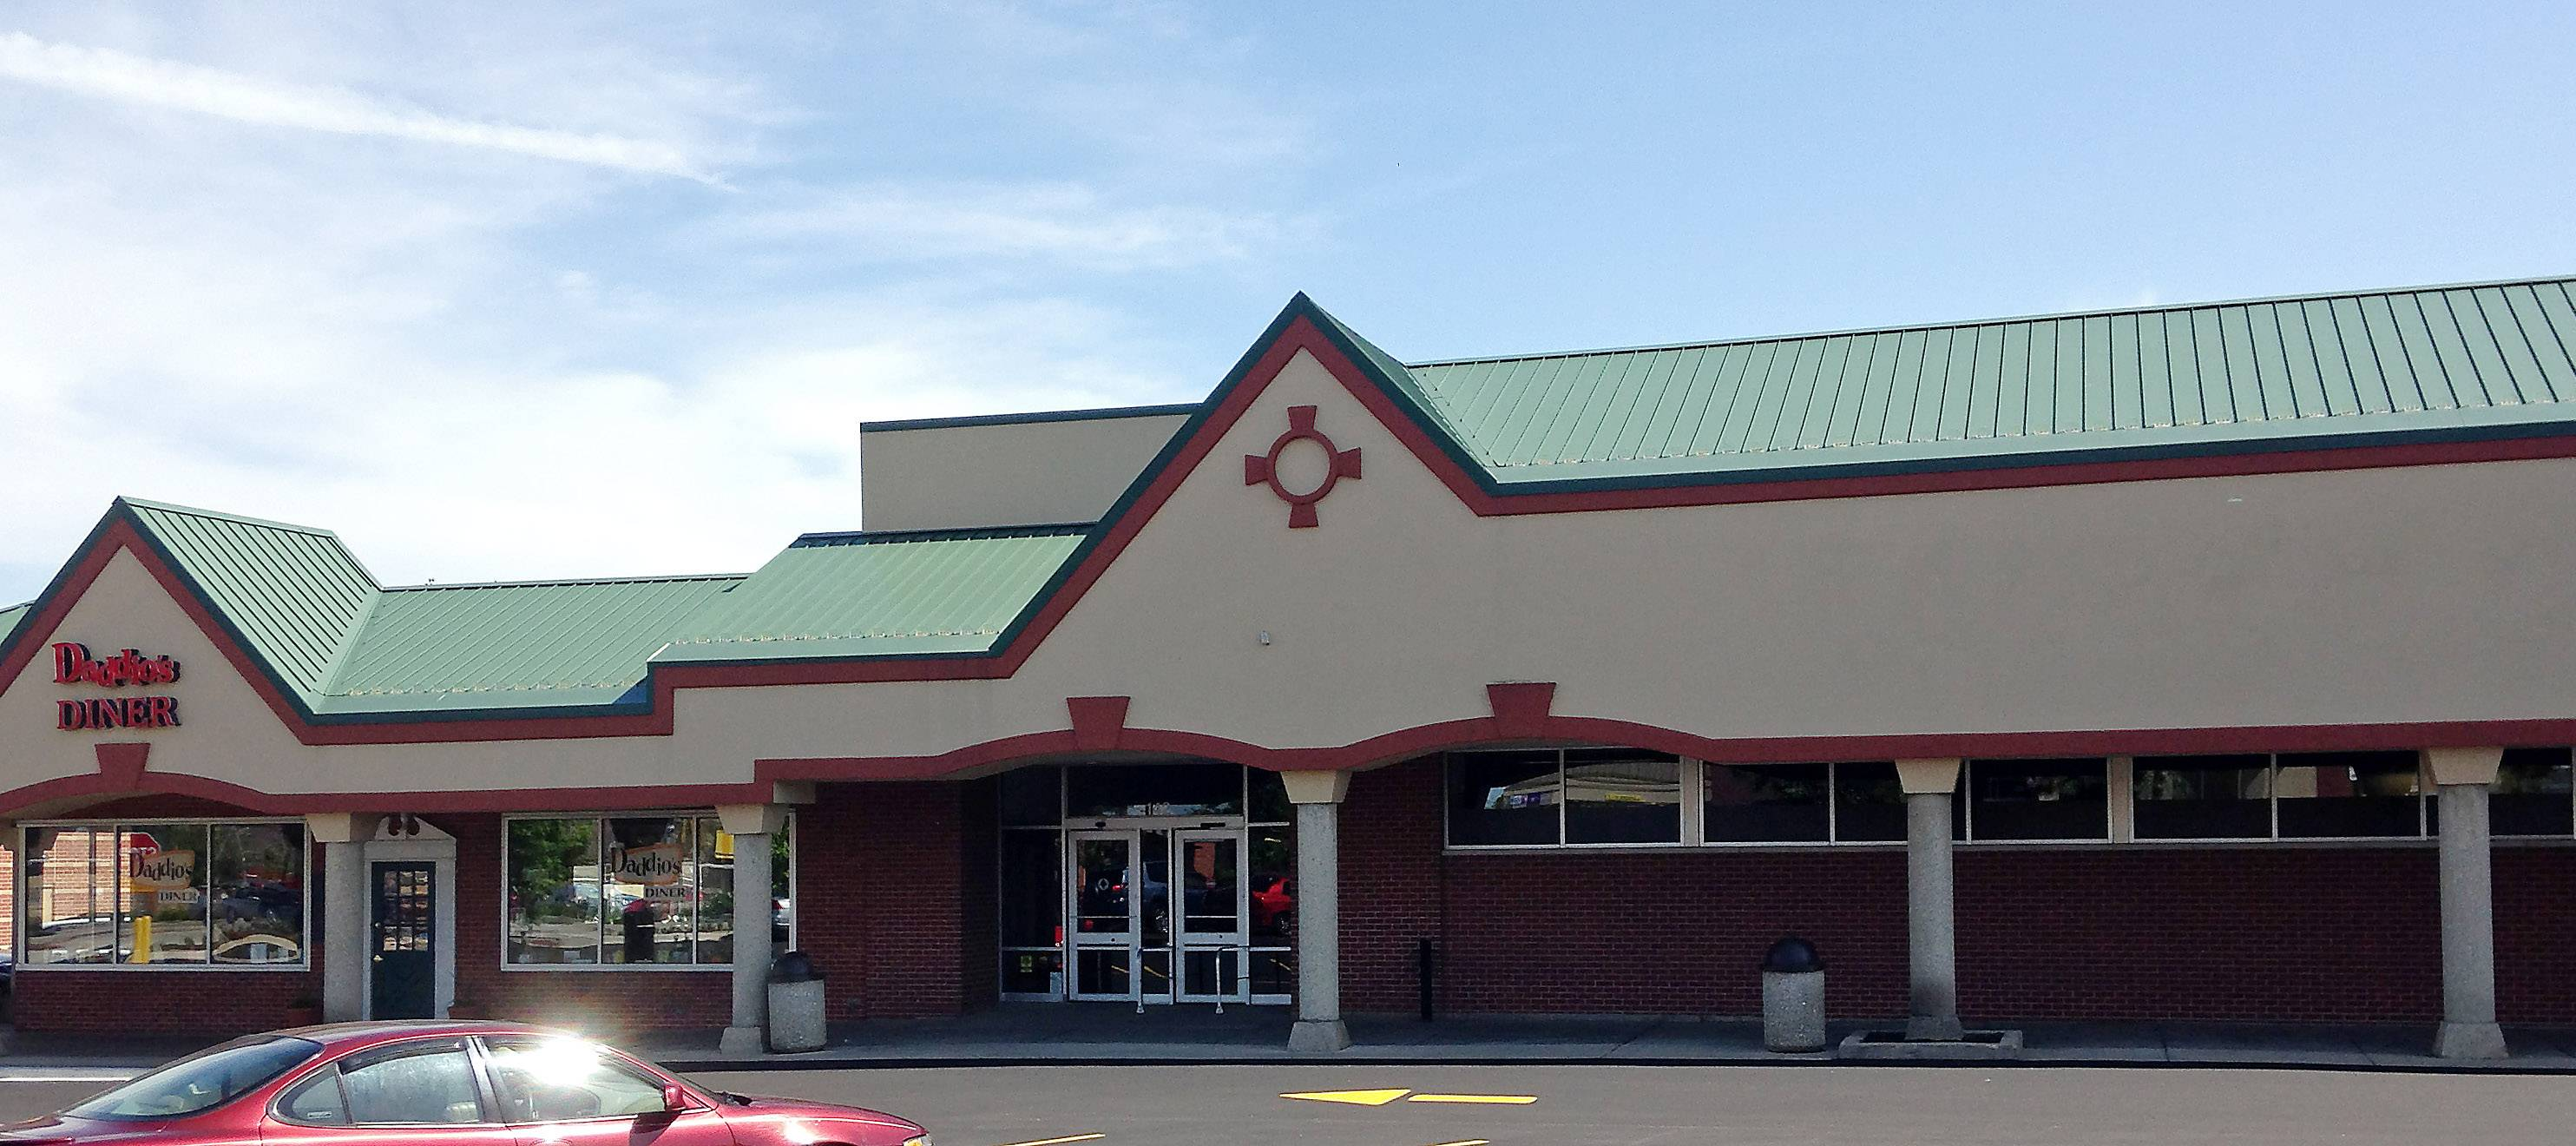 Blue Goose Market may be opening in the former Walgreens in Batavia Plaza on Wilson Street.